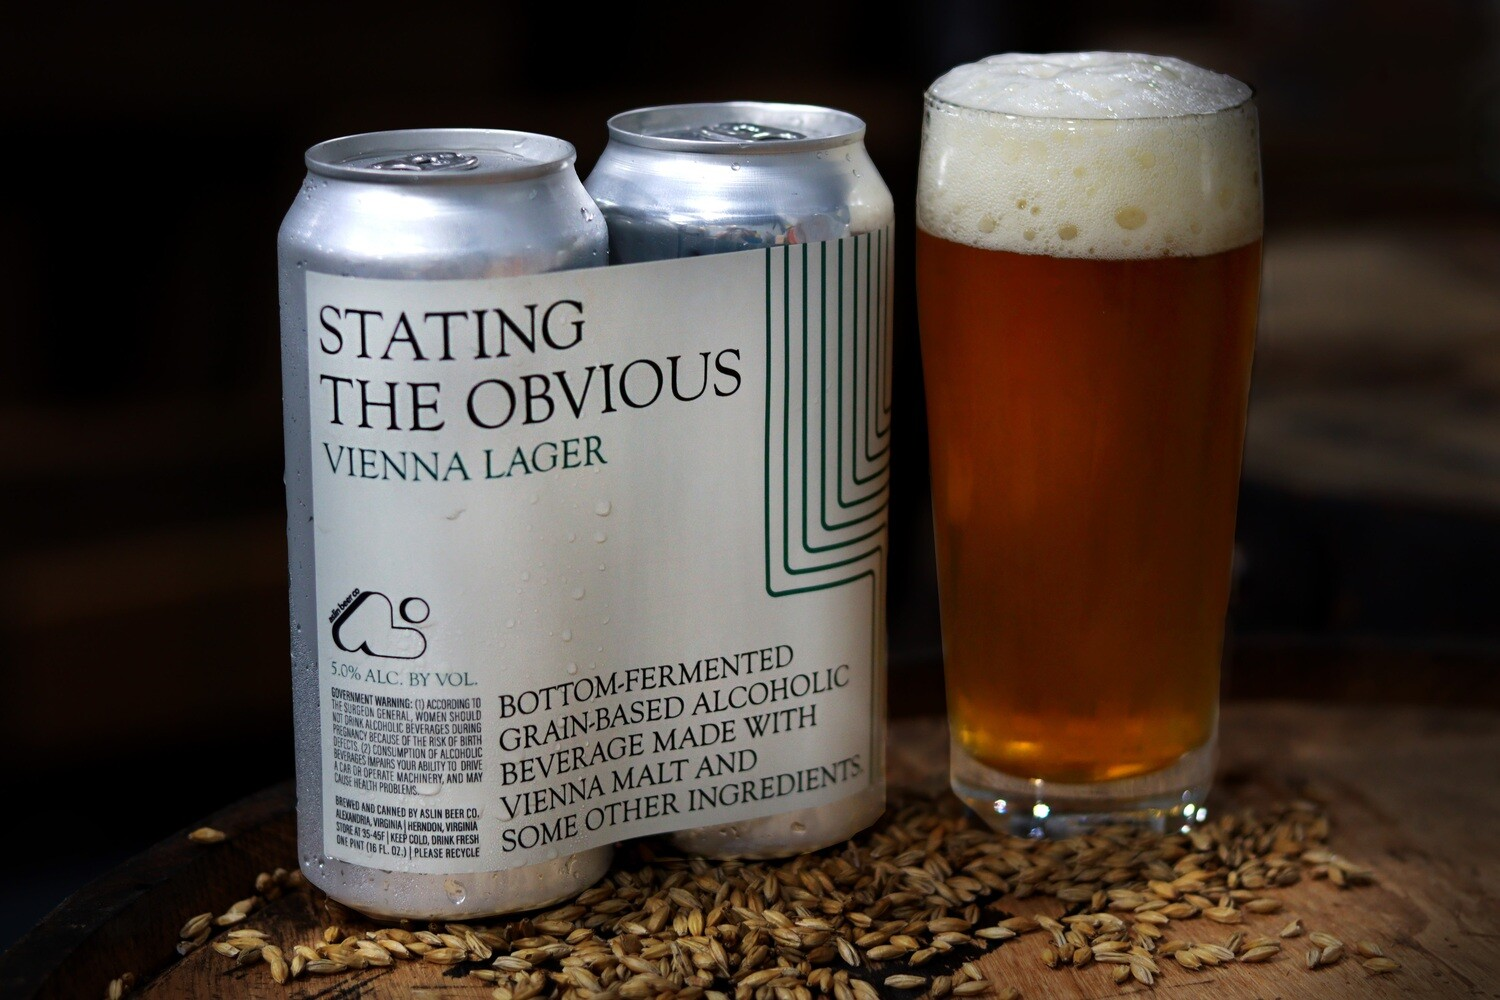 Stating the Obvious (4-Pack) Vienna Lager